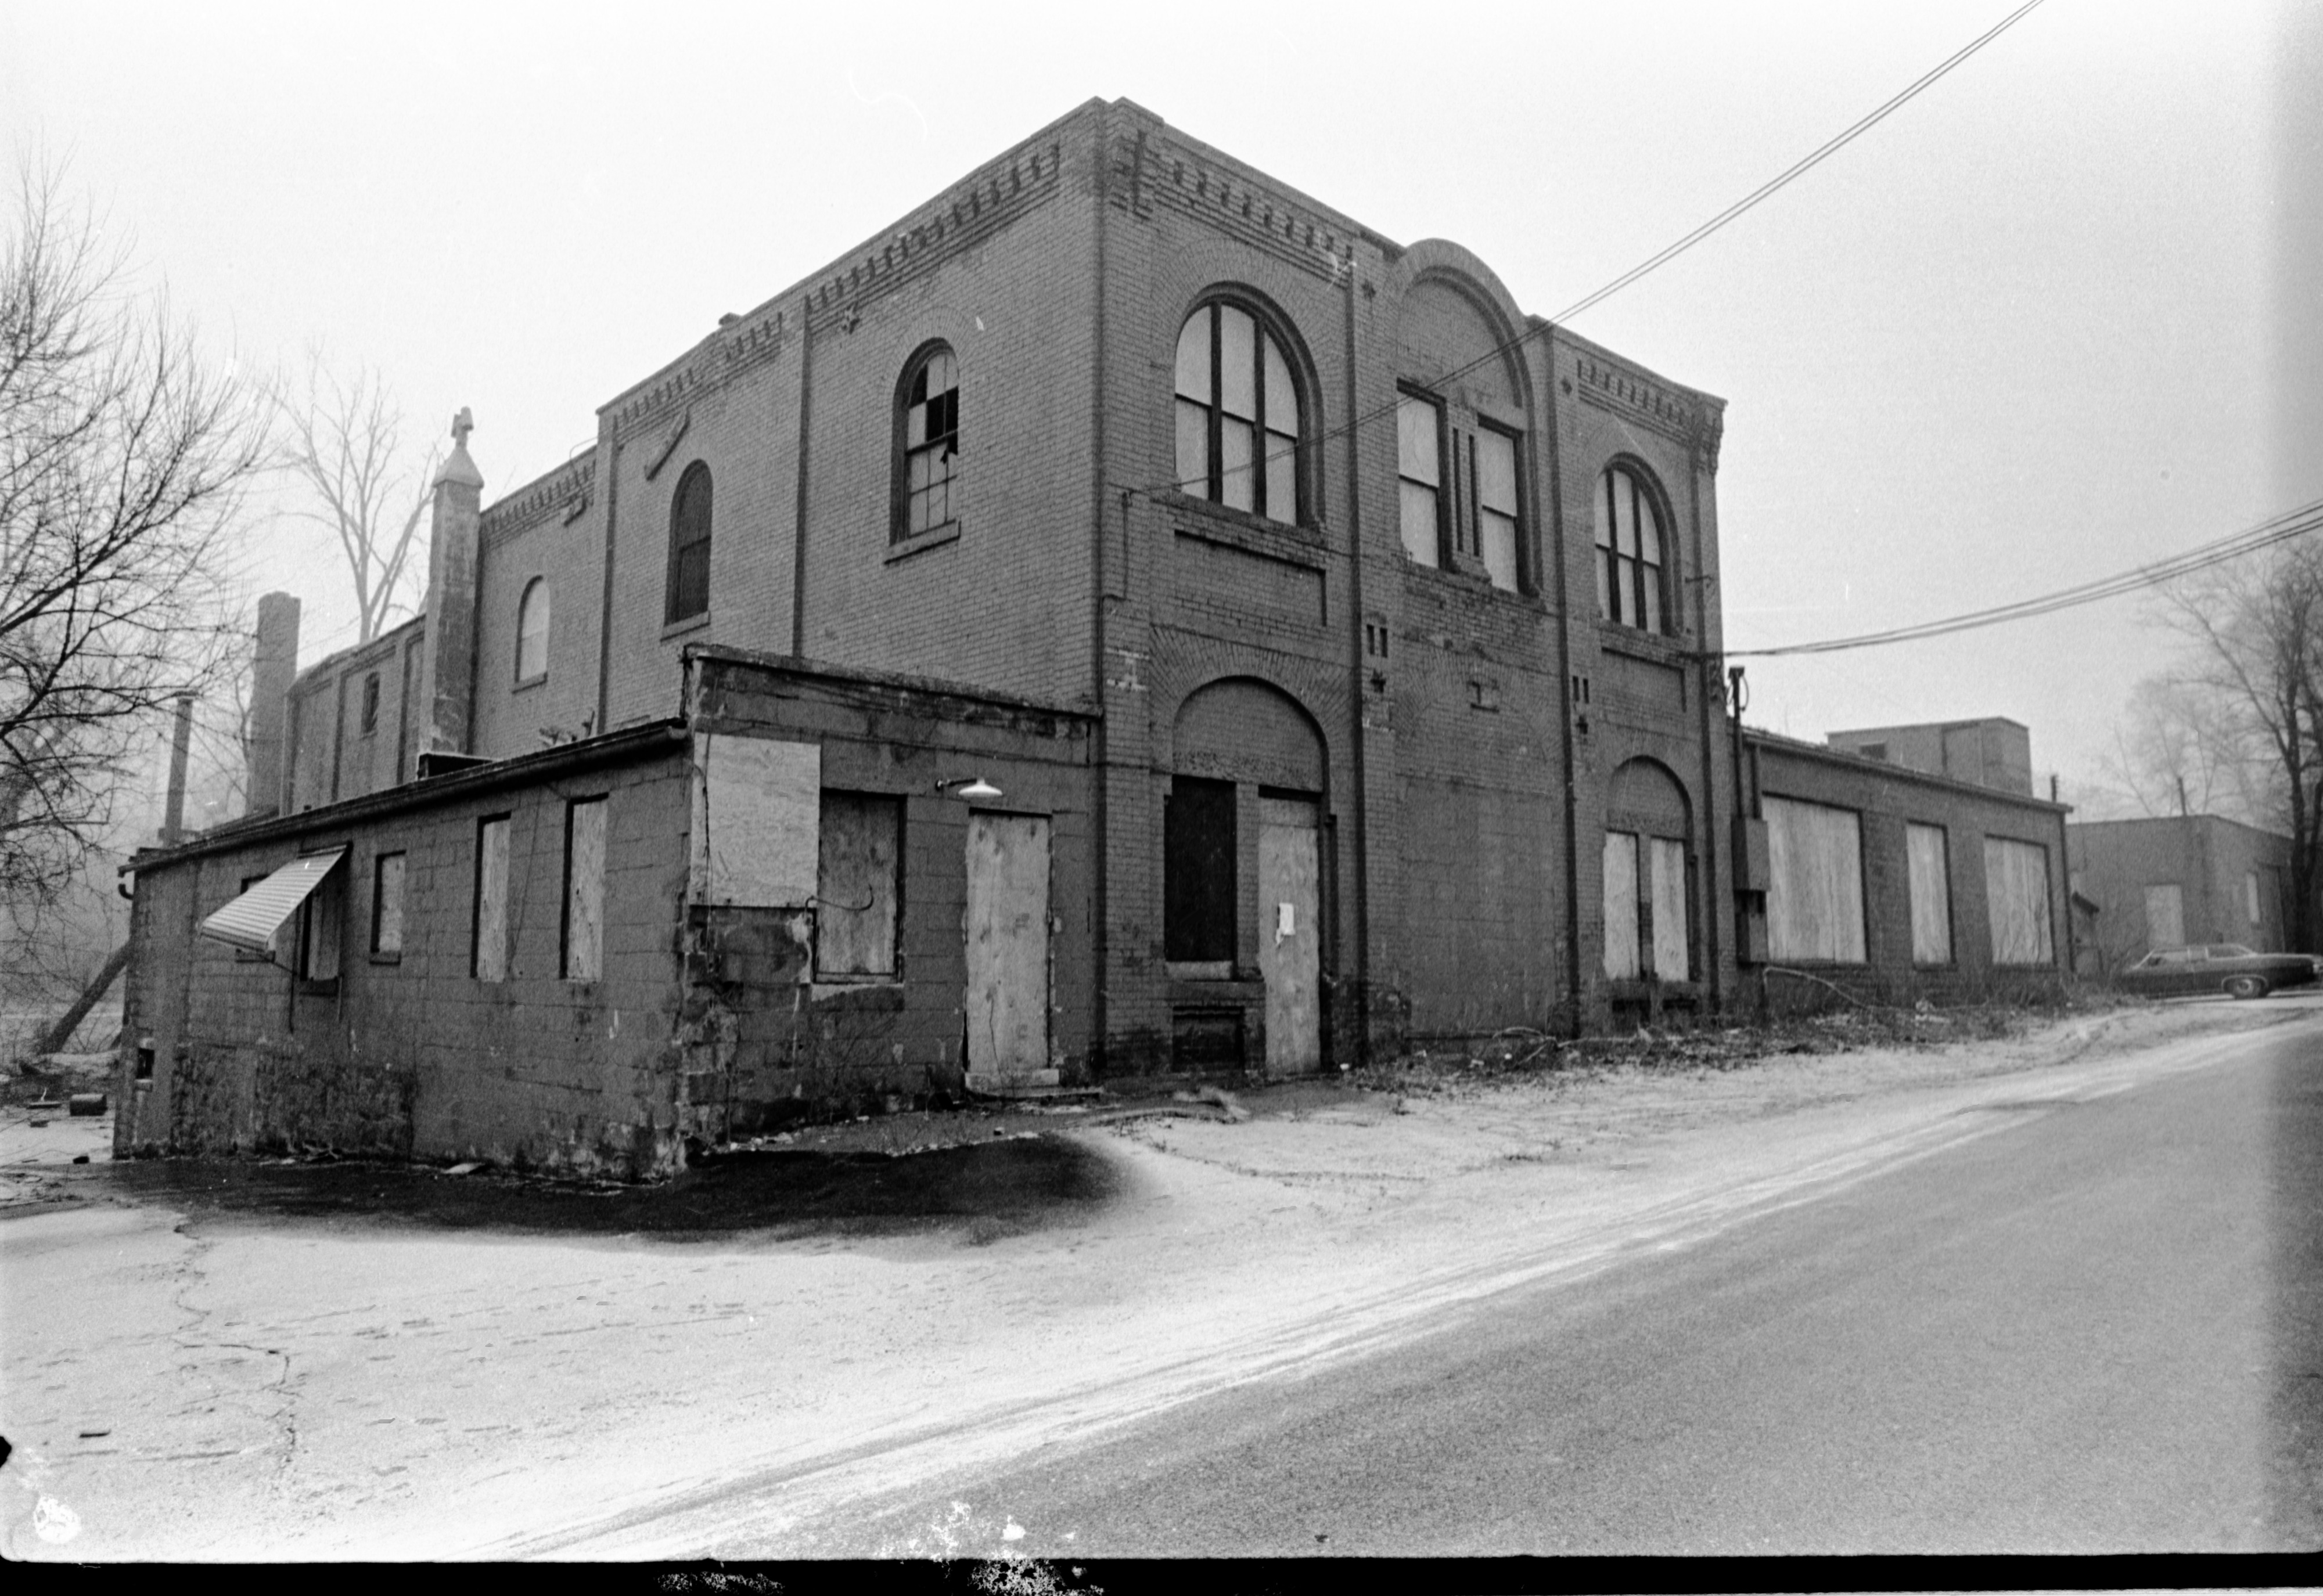 Exterior Of The Ann Arbor Foundry, February 5, 1975 image